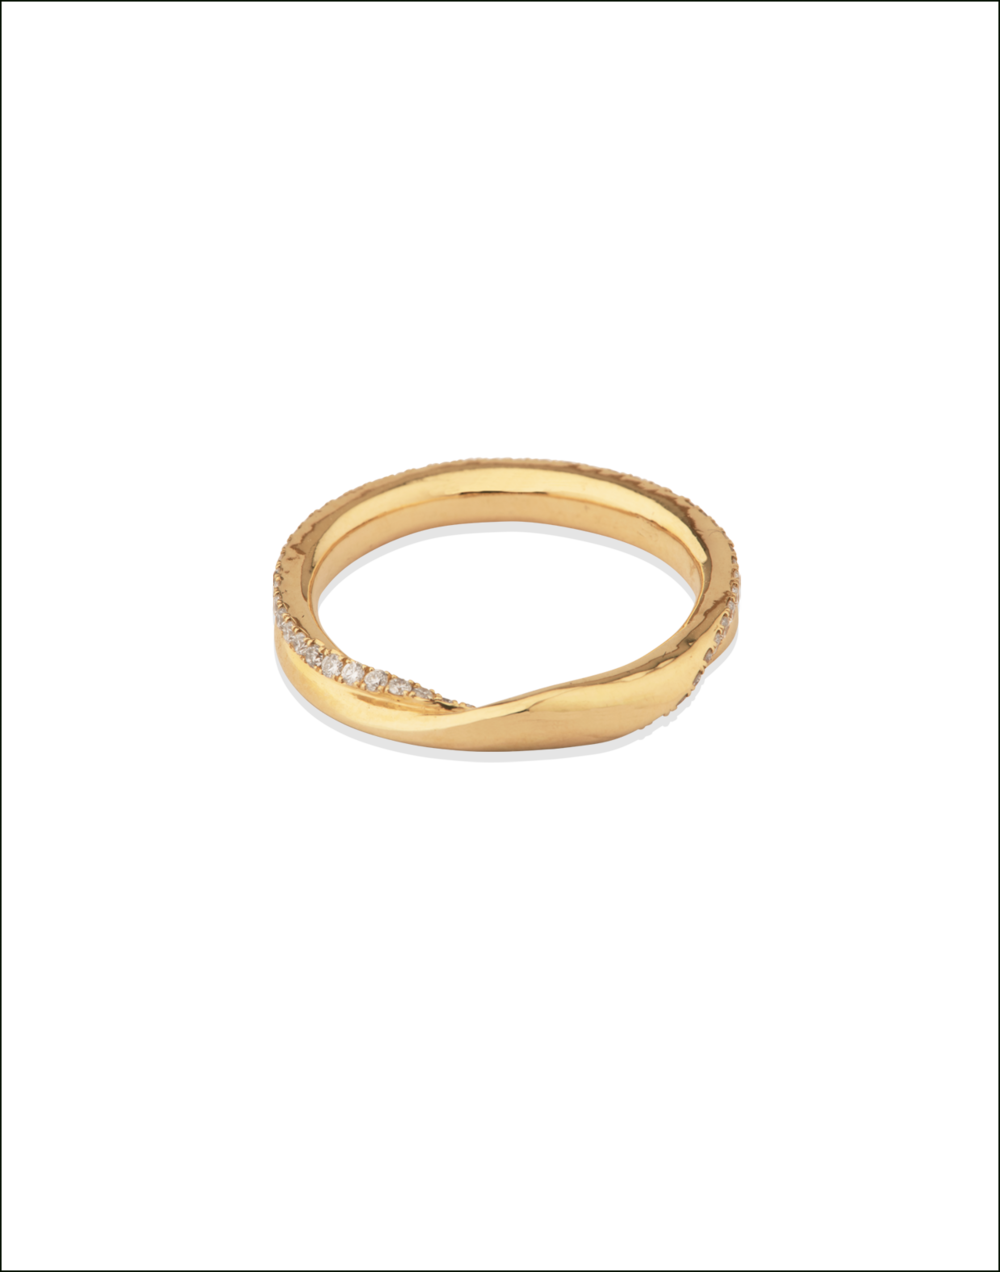 Completedworks-Wedding-Band-Doublement-Gold-Ring-4-1.png